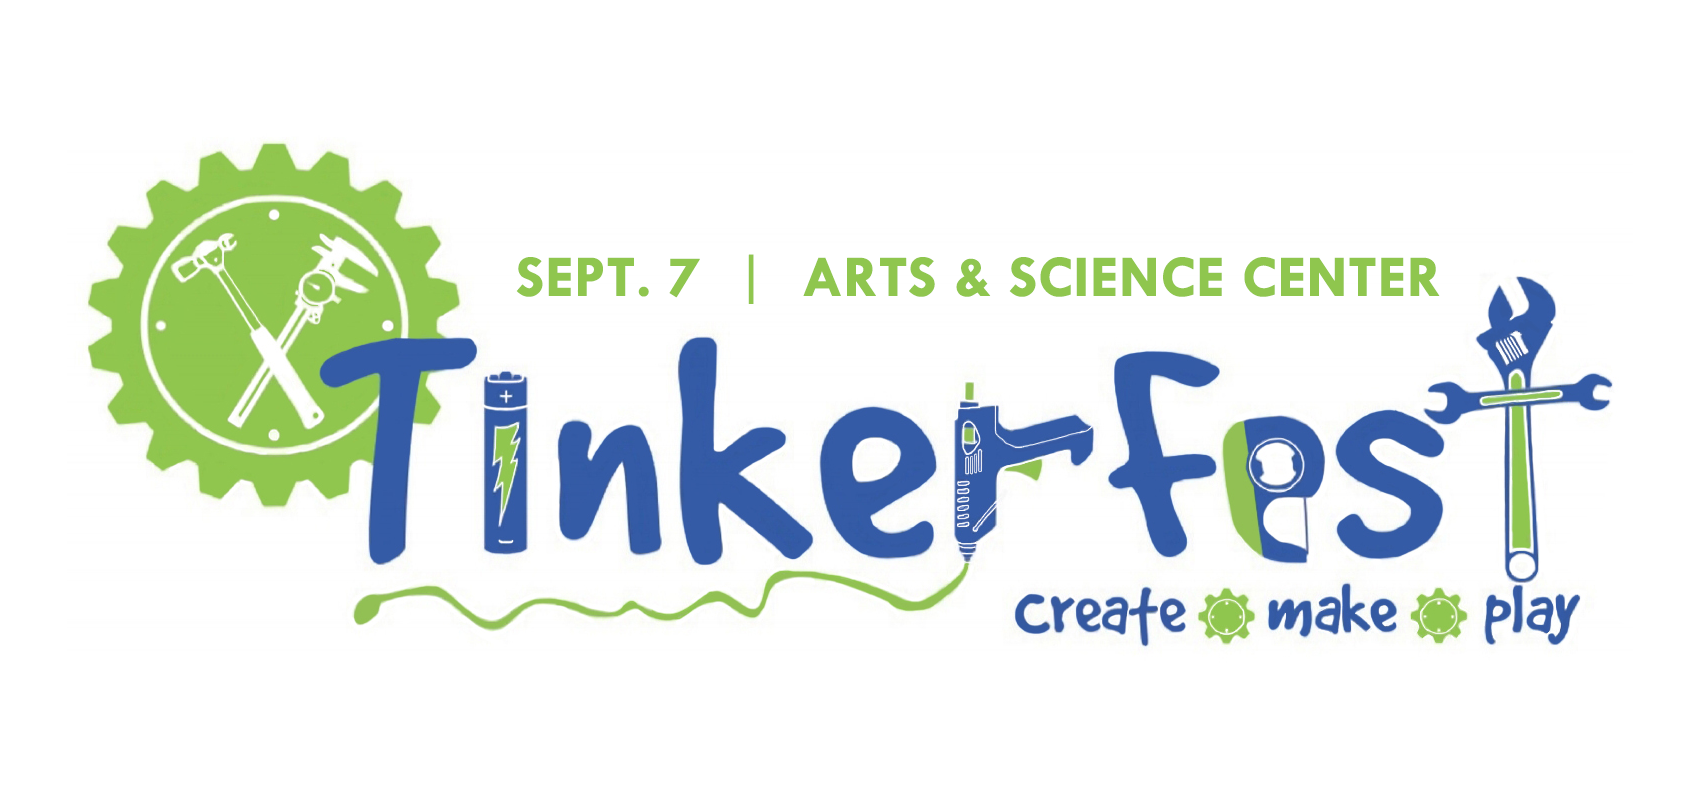 Tinkerfest_logo with date.png